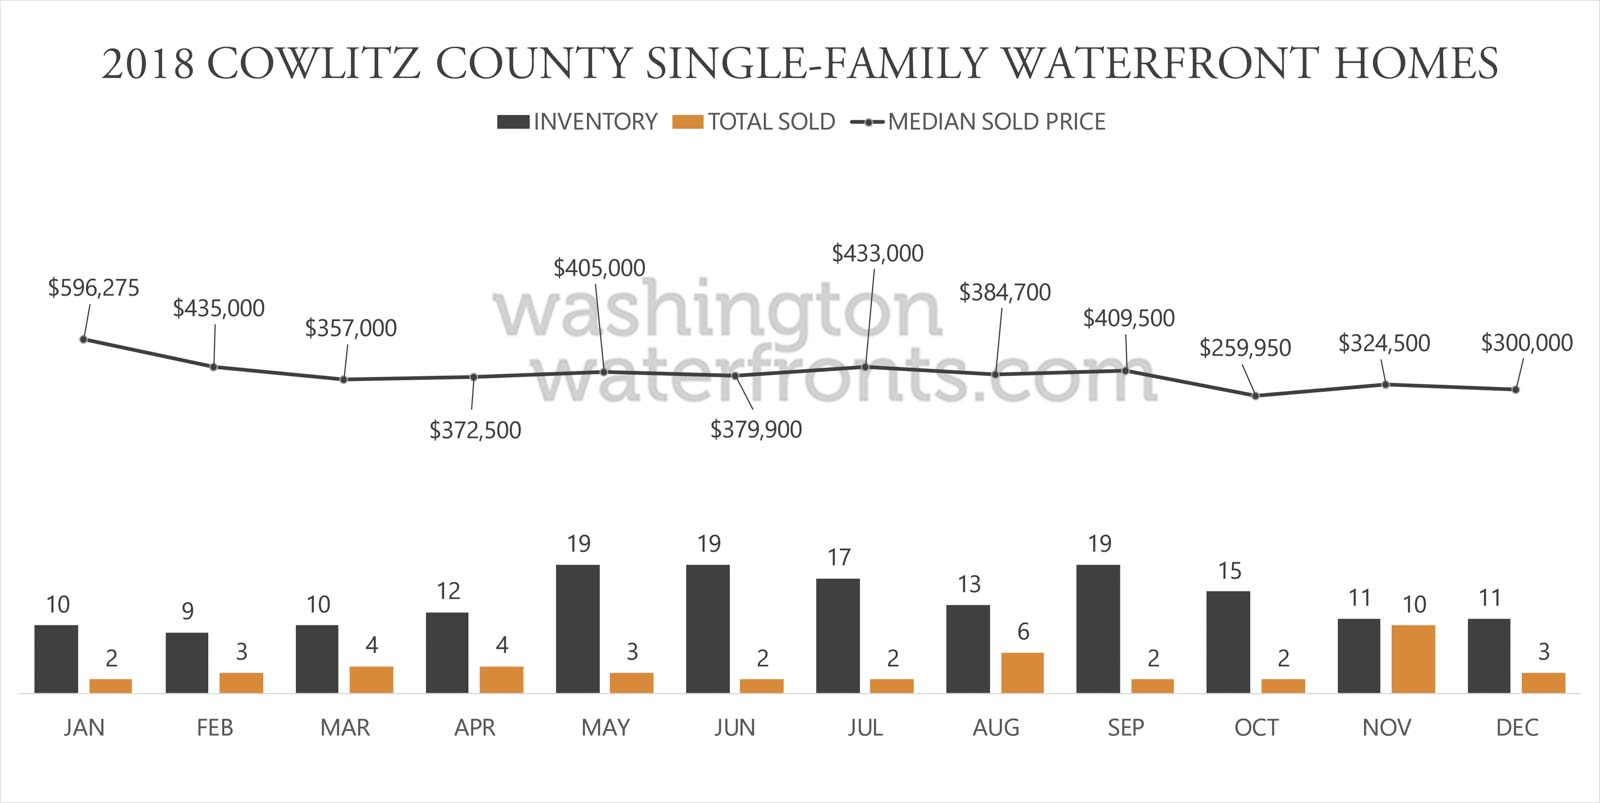 Cowlitz County Waterfront Inventory